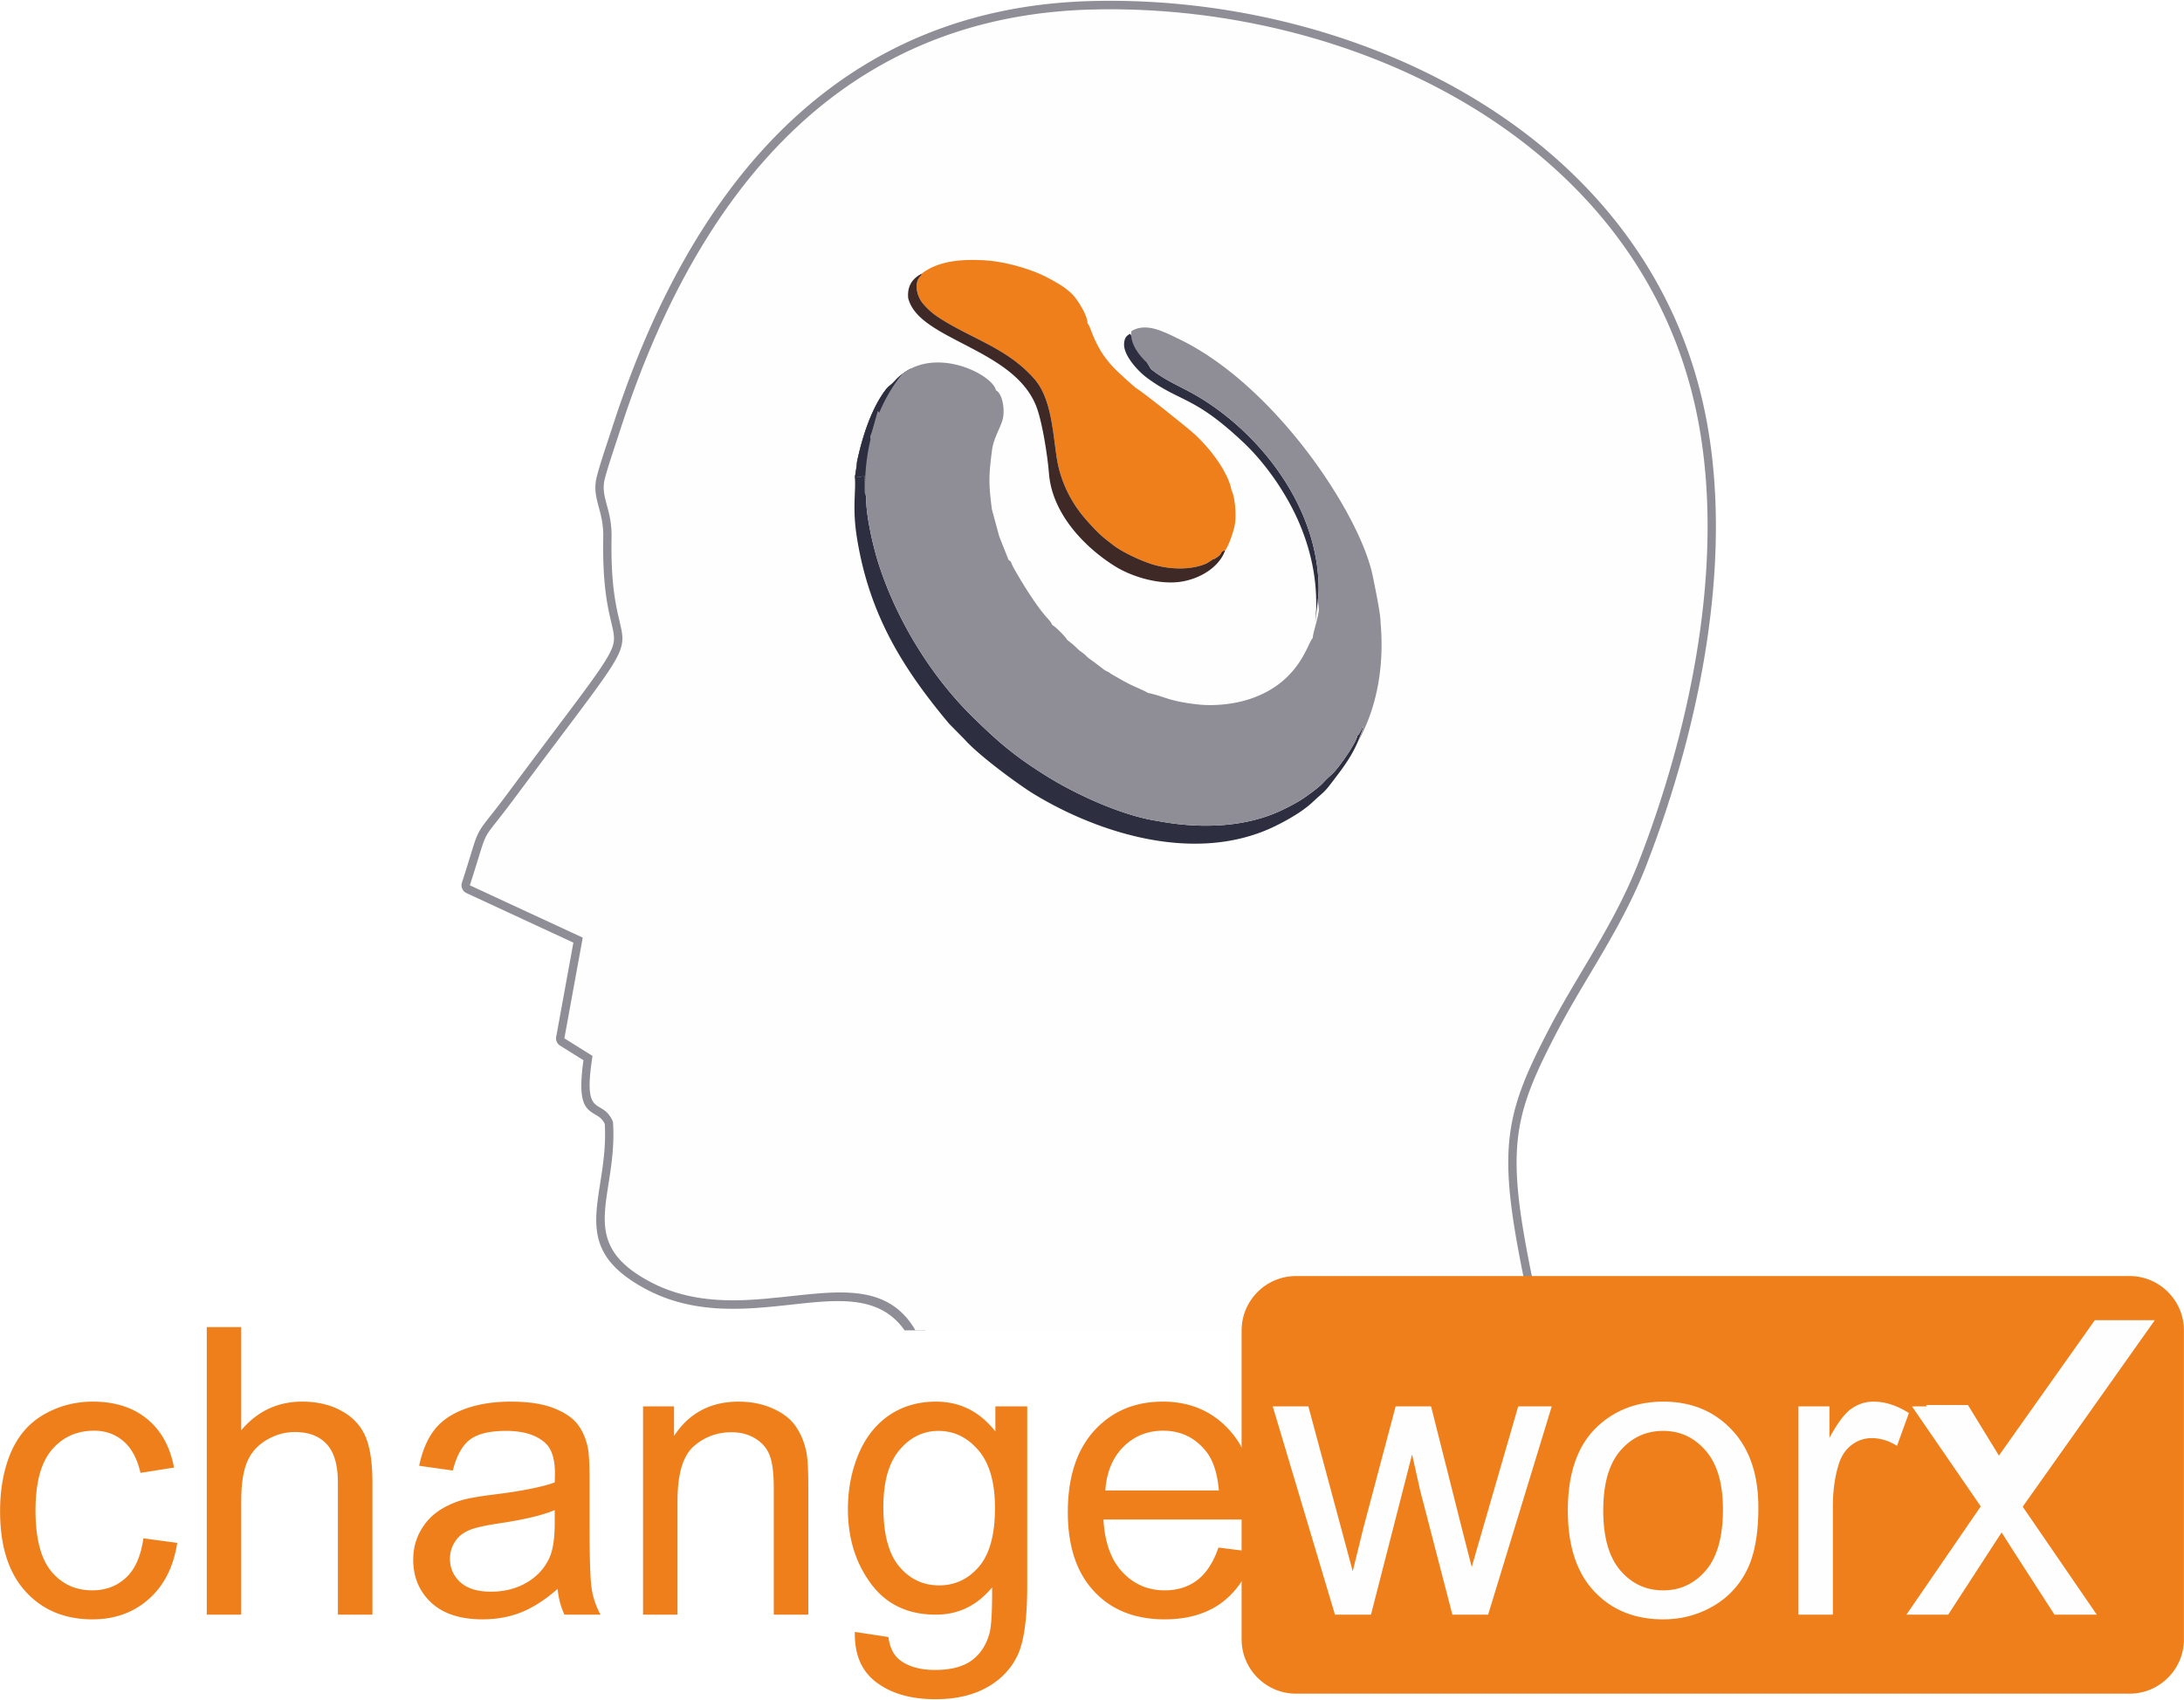 Dr. Richard Bandler's NLP Practitioner Program - ChangeWorx